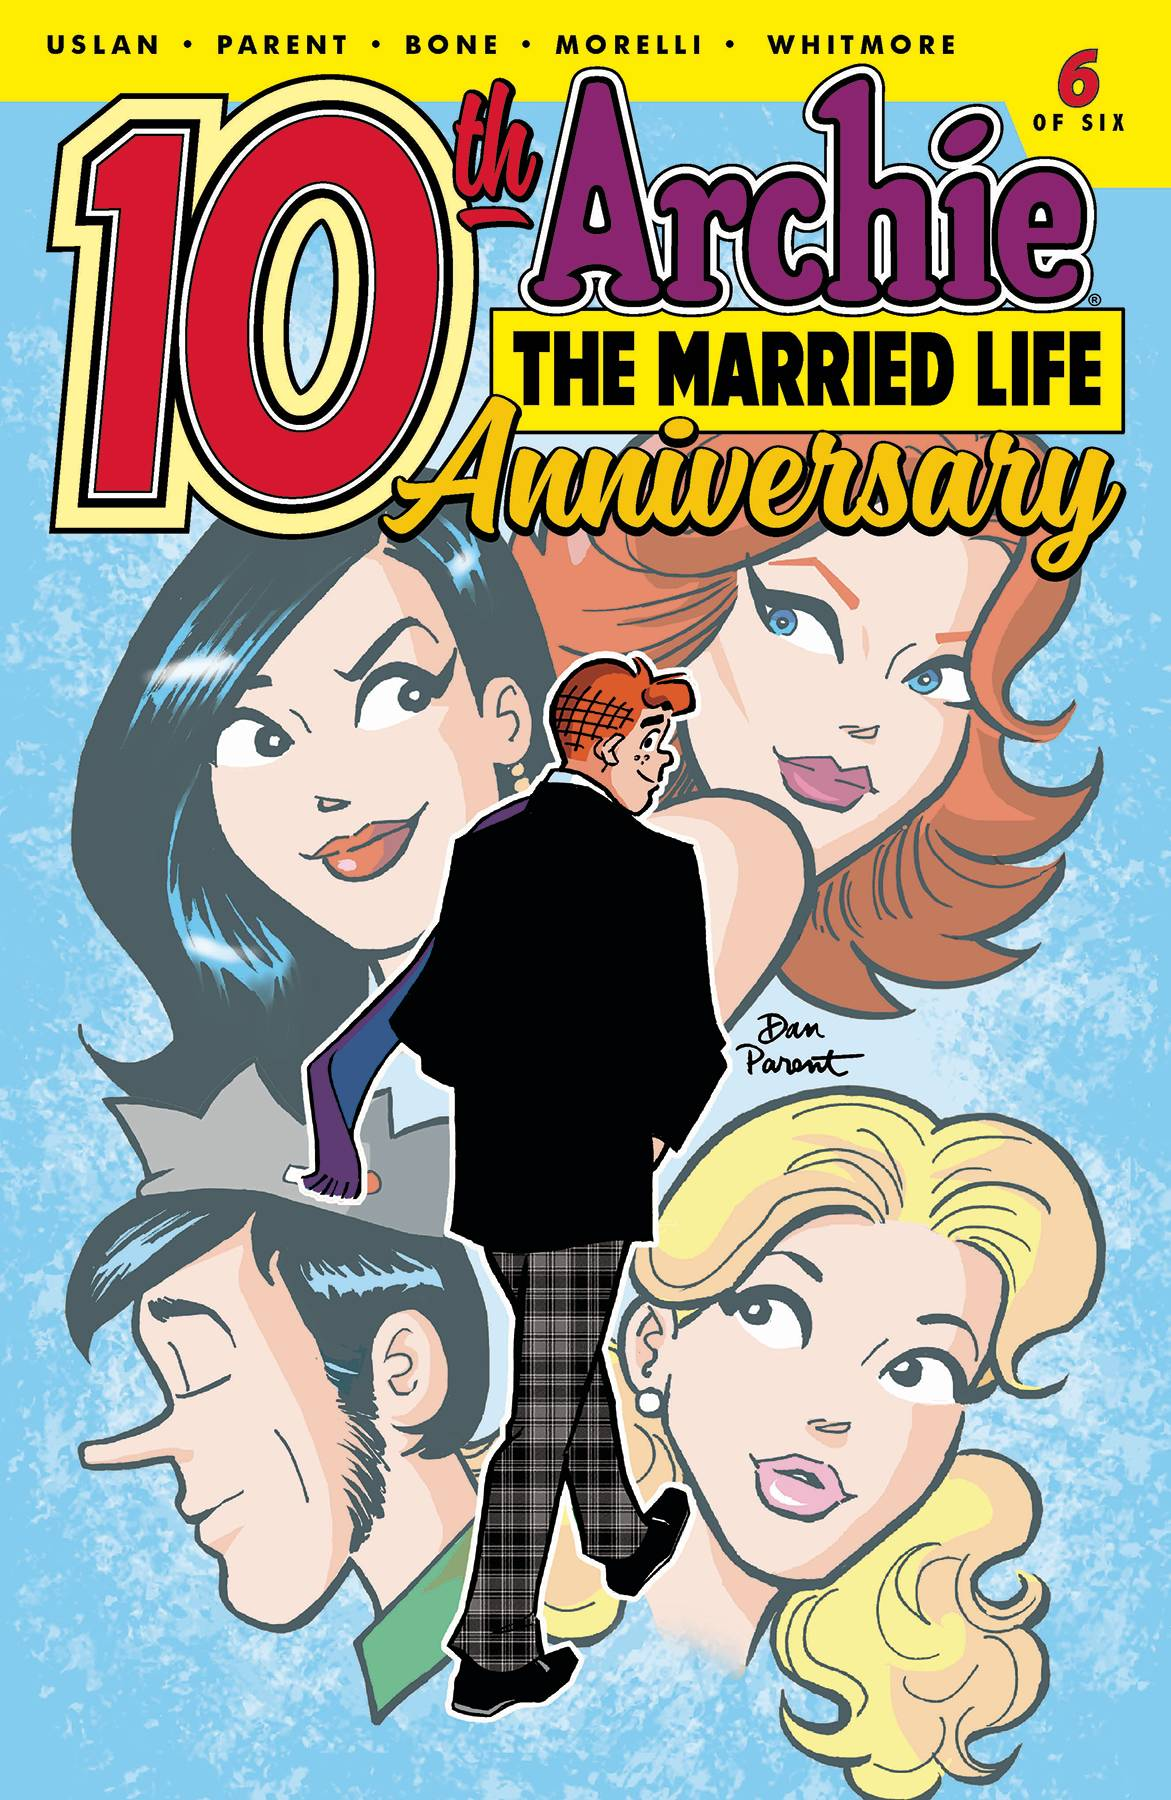 Archie - The Married Life: 10 Years Later #6 (2020)